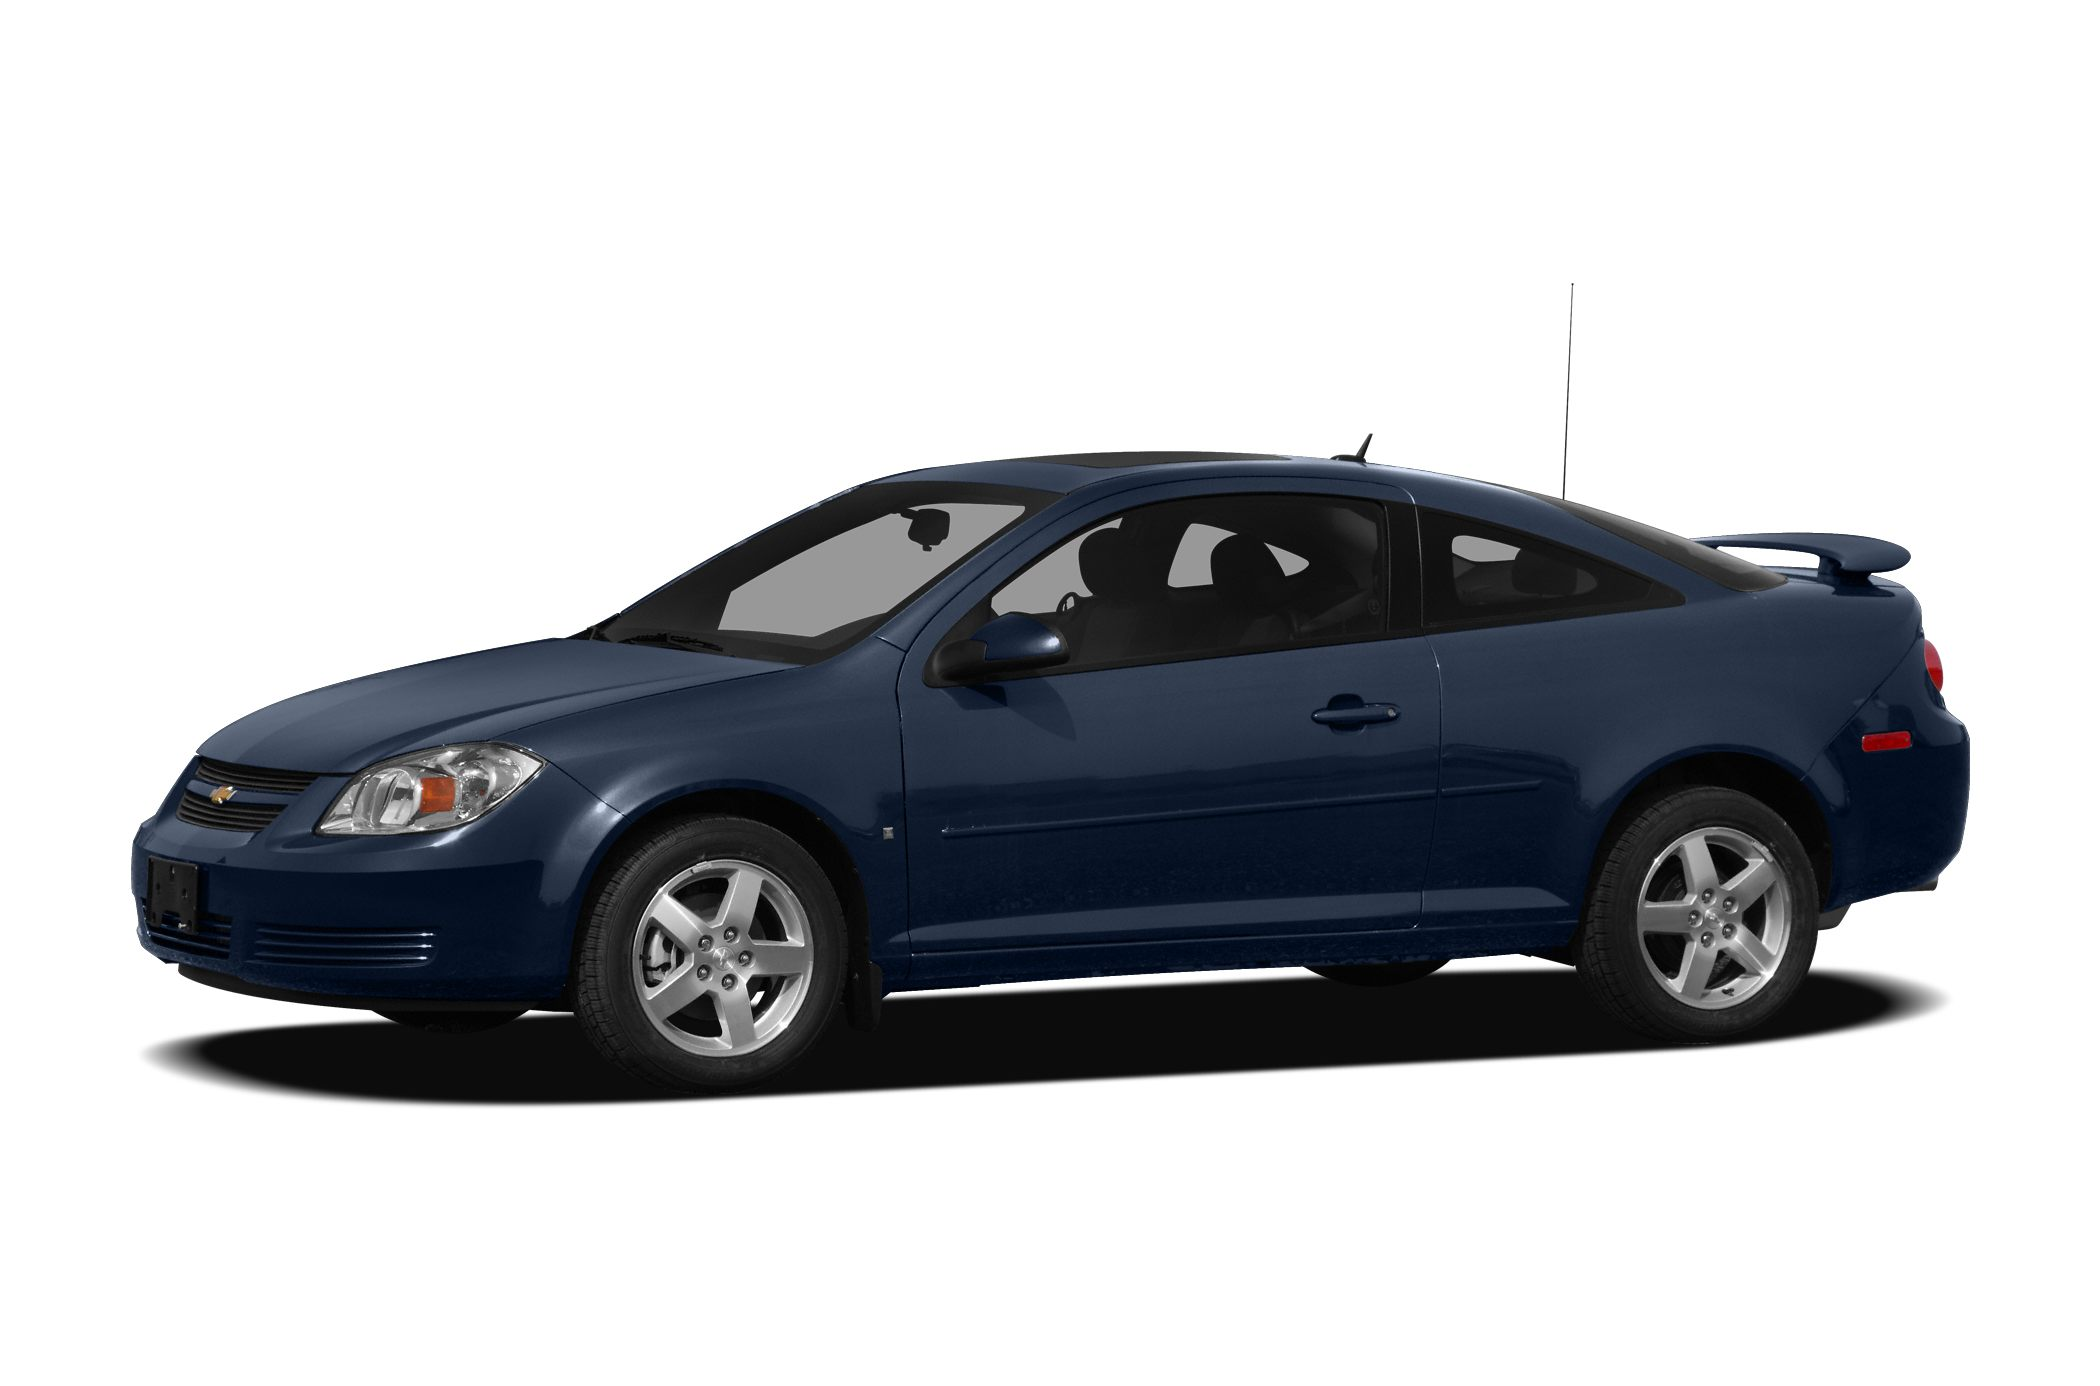 2009 Chevrolet Cobalt LT Sedan for sale in Hampton for $8,950 with 72,239 miles.